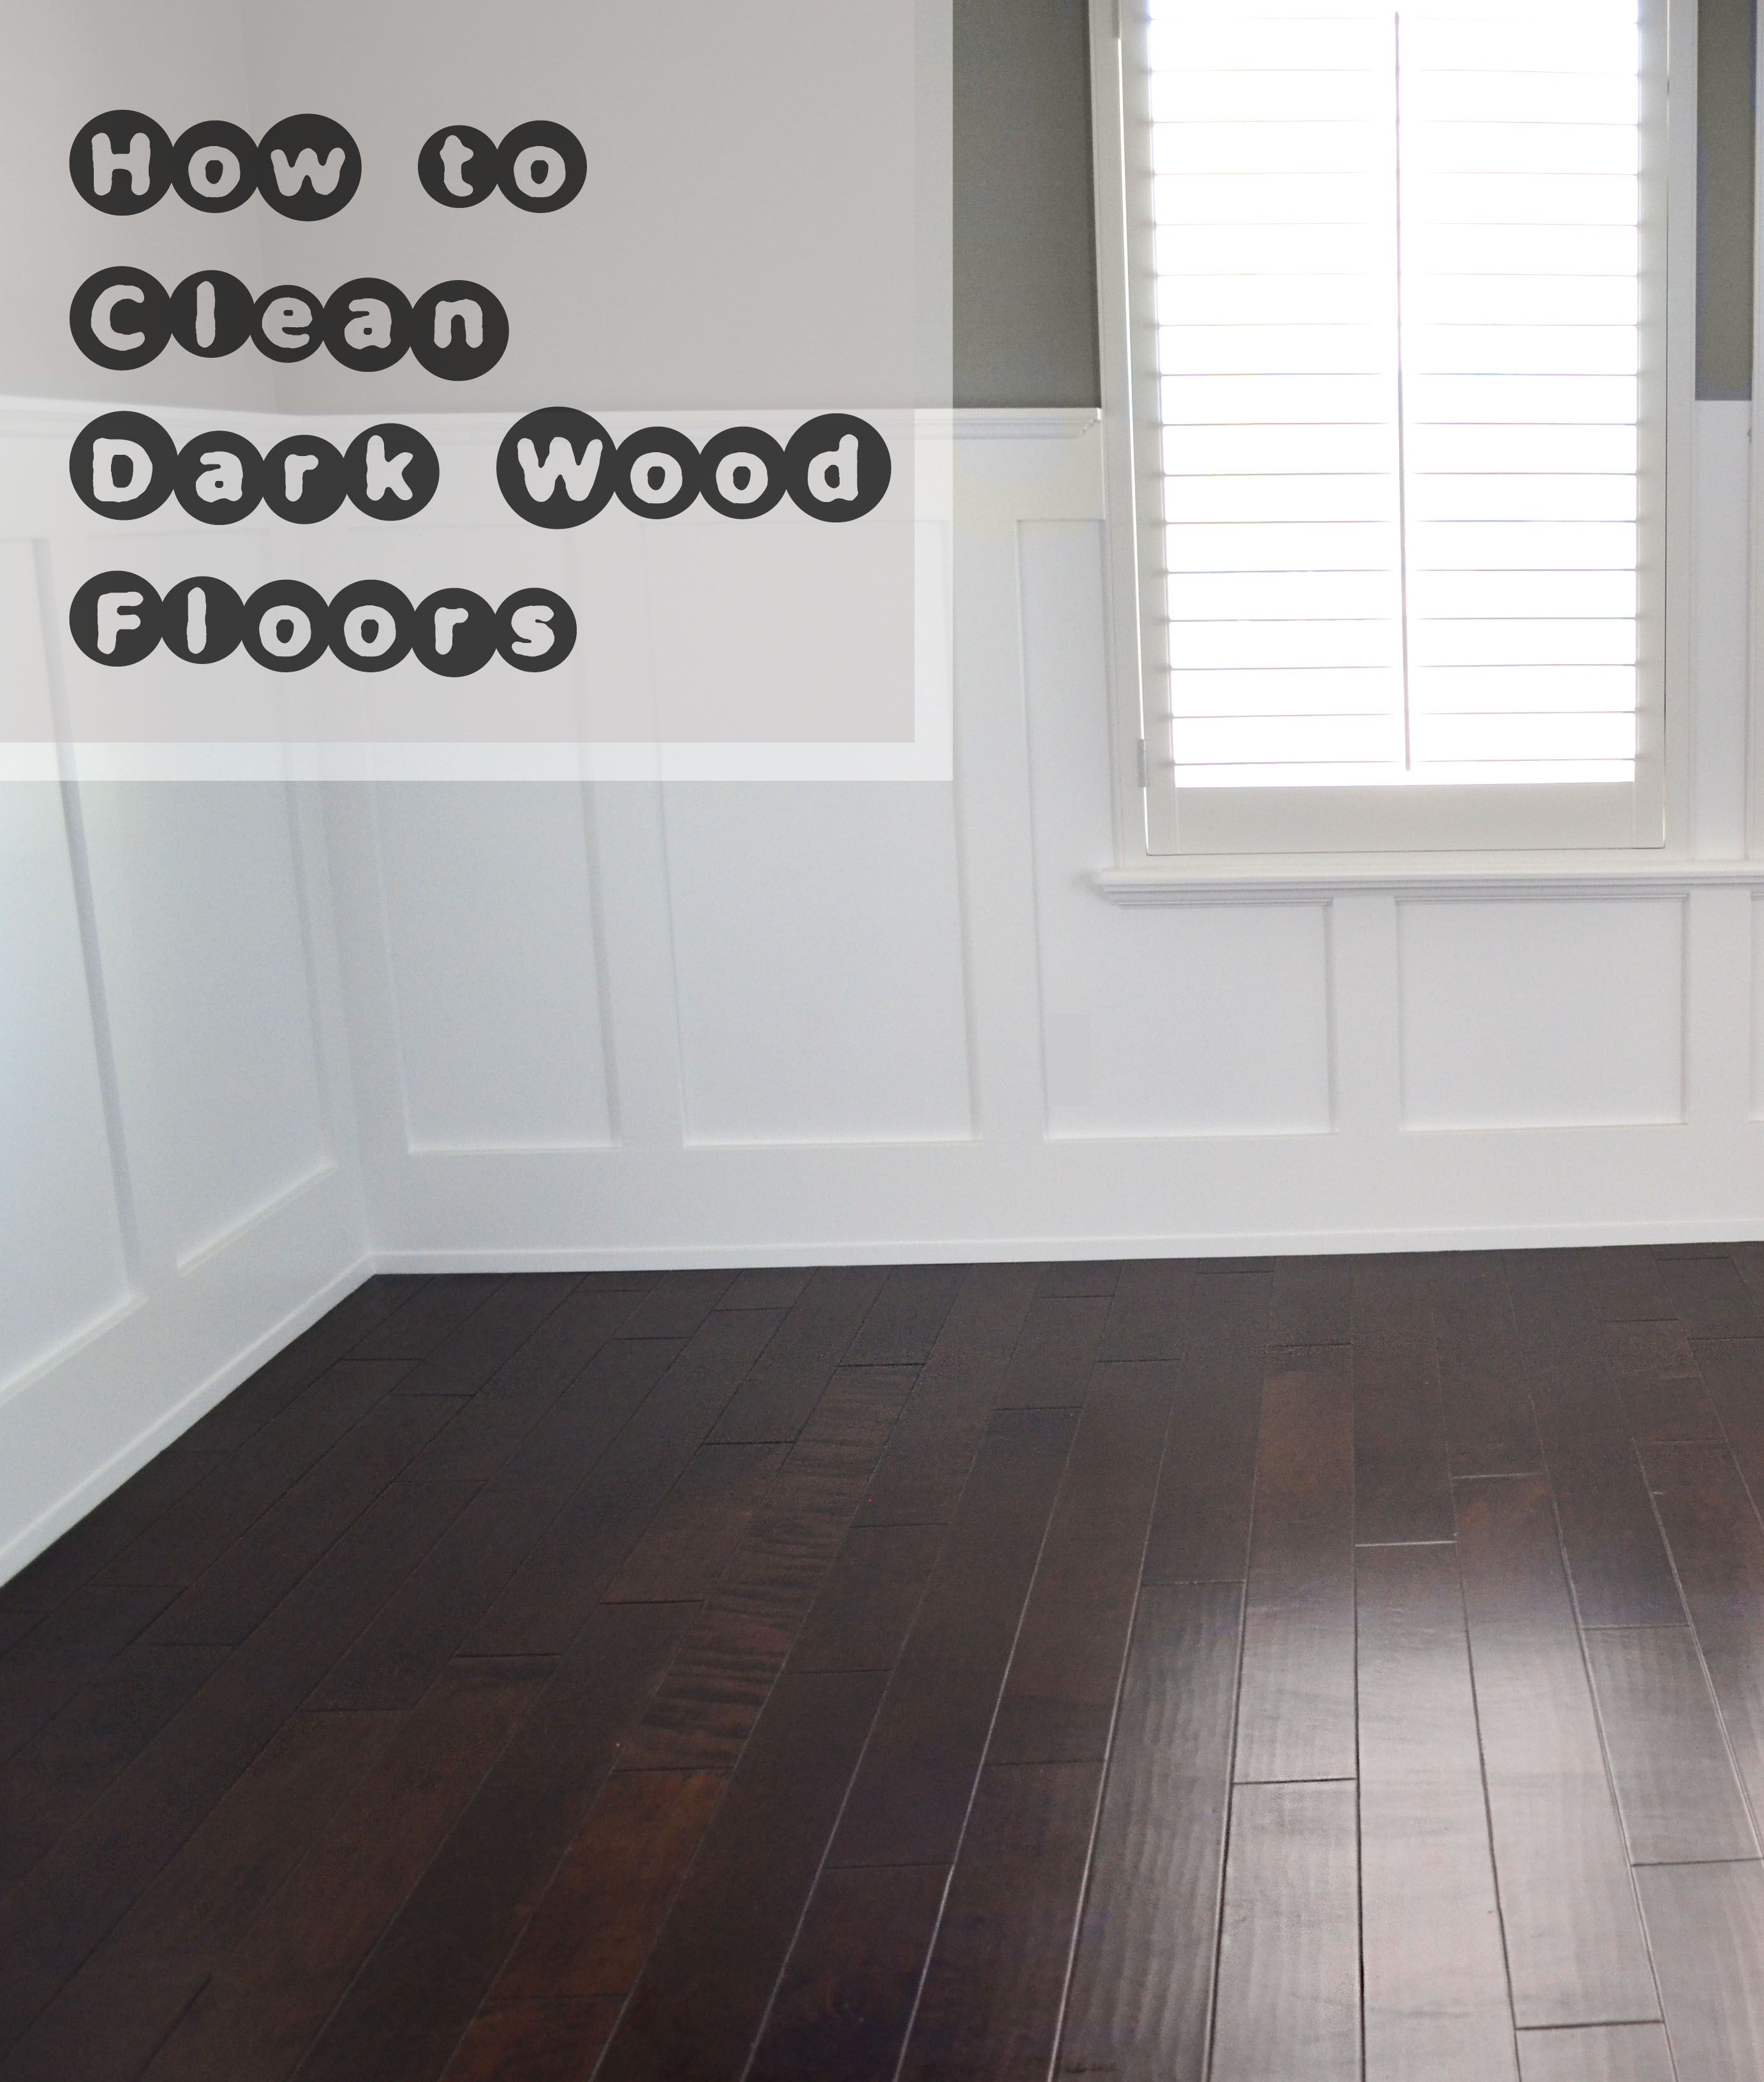 how to clean dark wood floors Our Fifth House For the Home